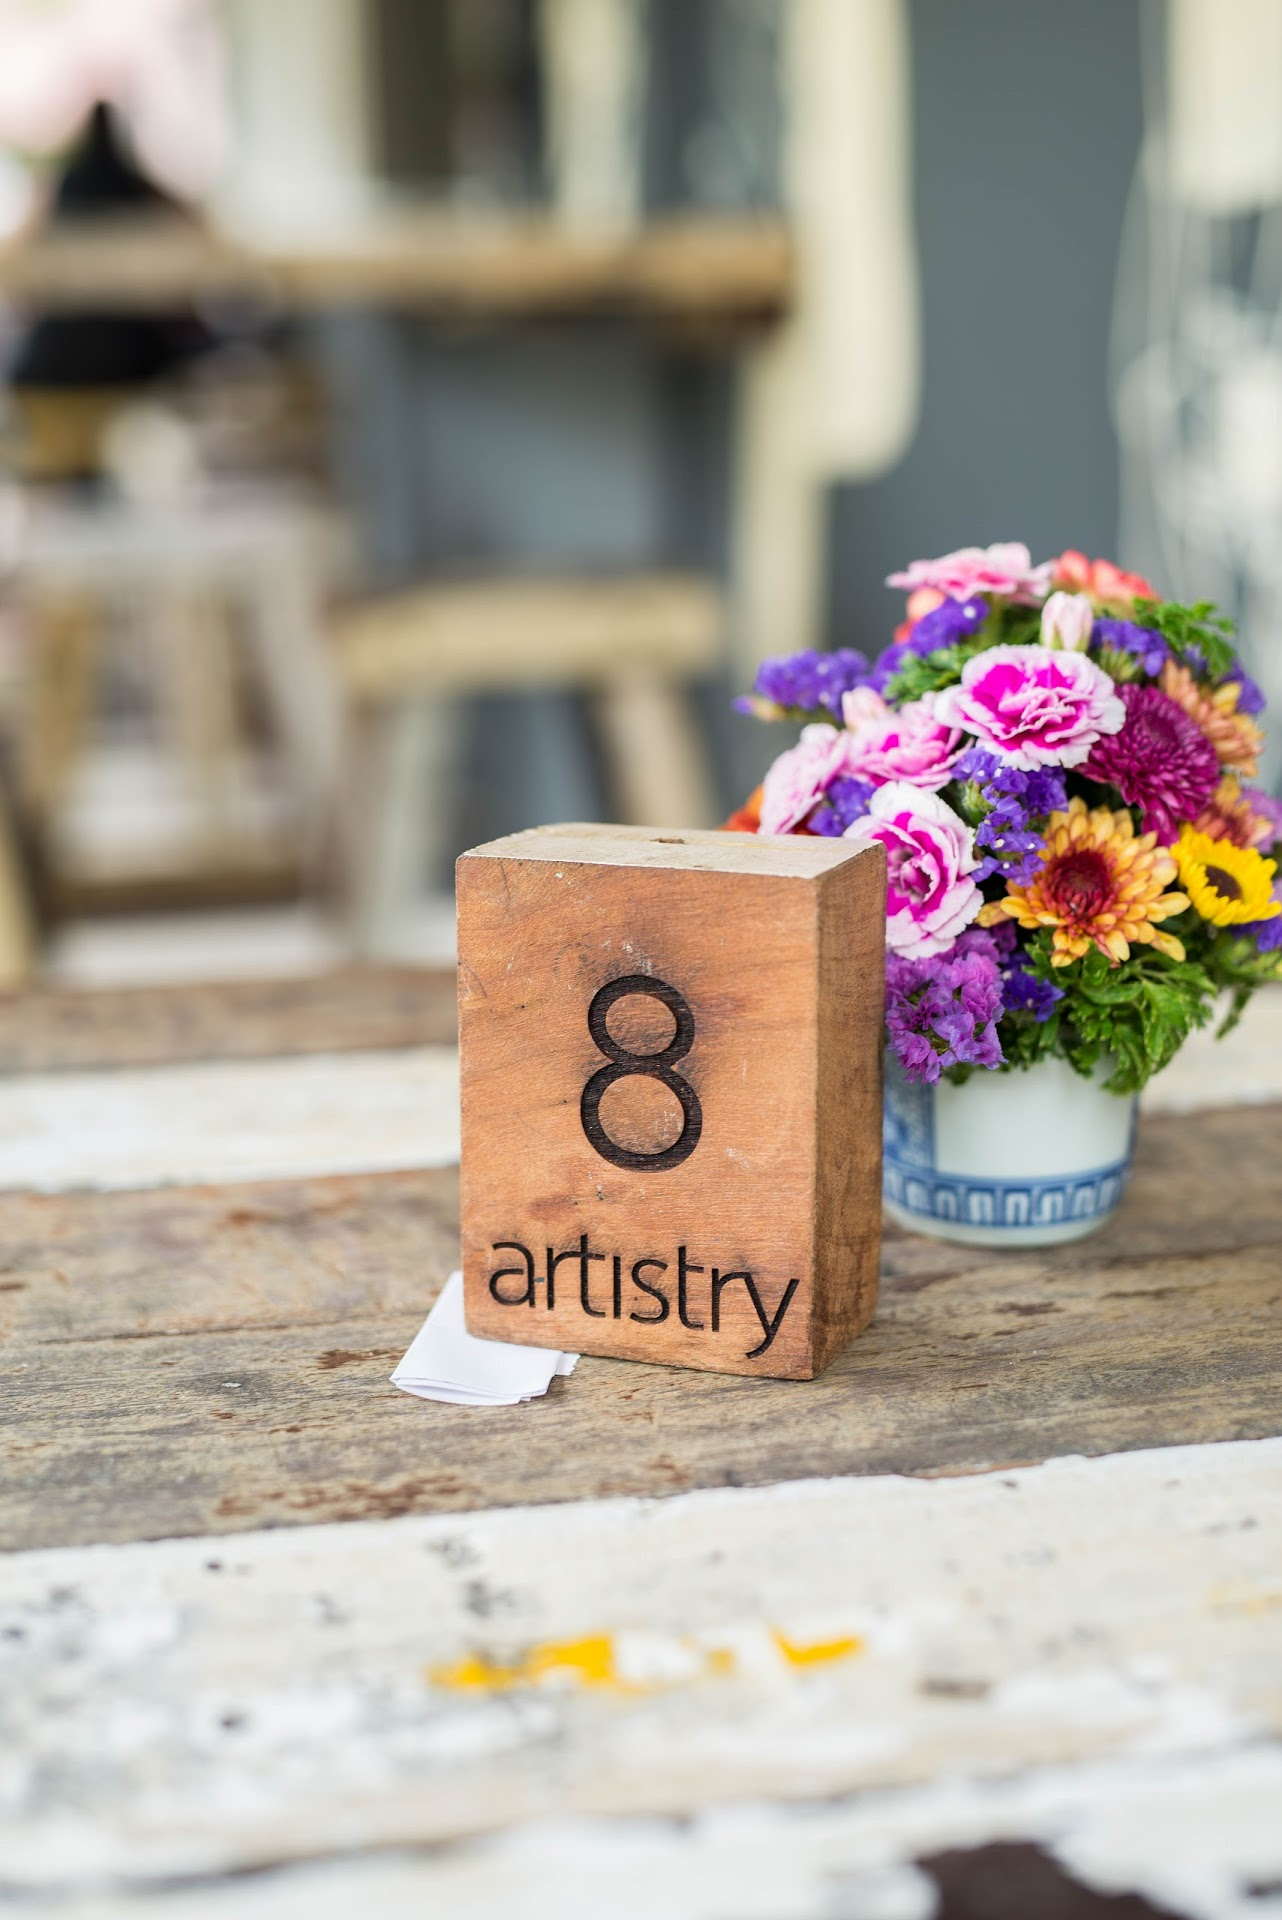 artistry cafe review, cafes in singapore, breakfast brunch